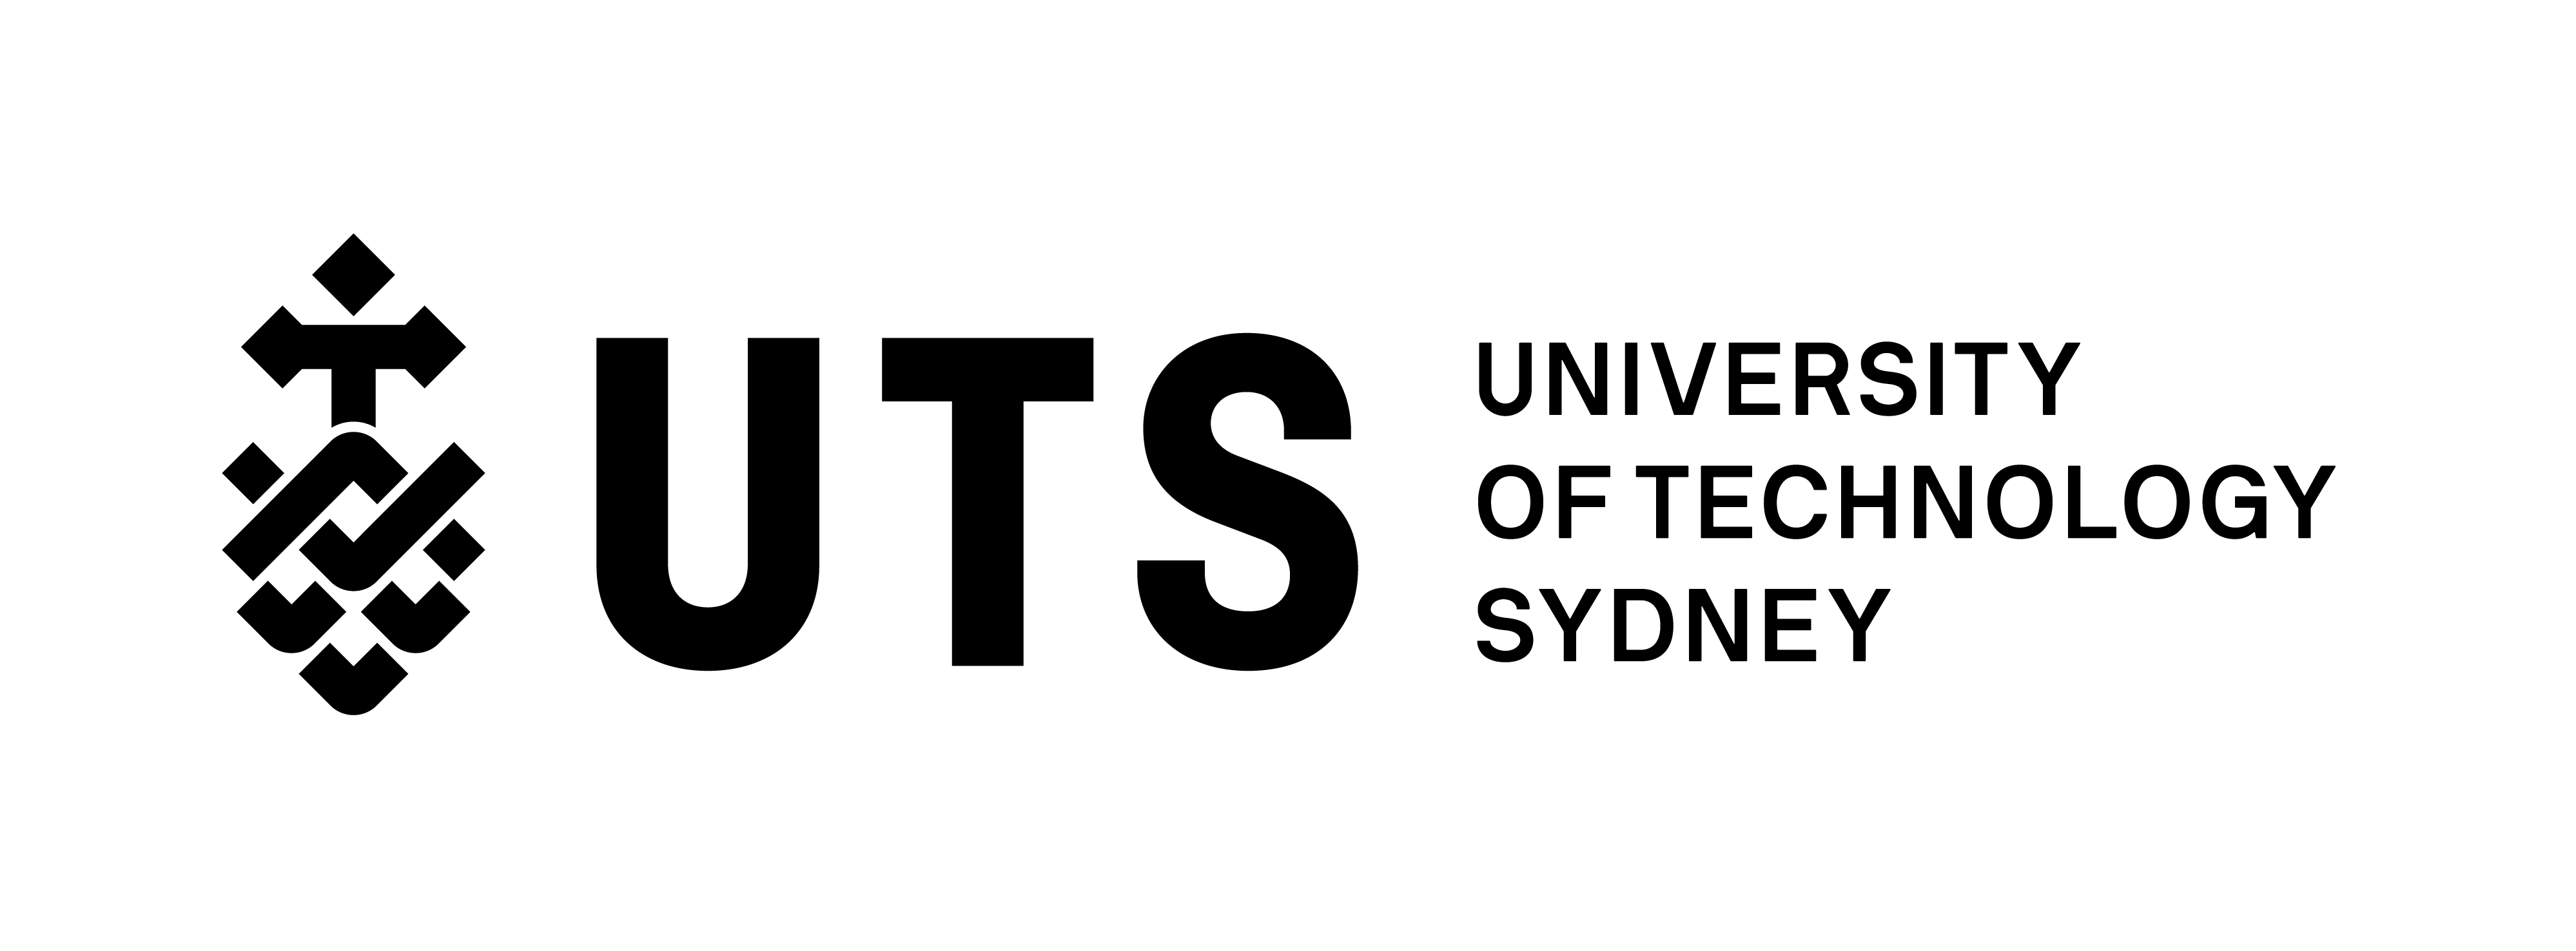 University of Technology Sydney - Bachelor of Communication - Media Arts and Production